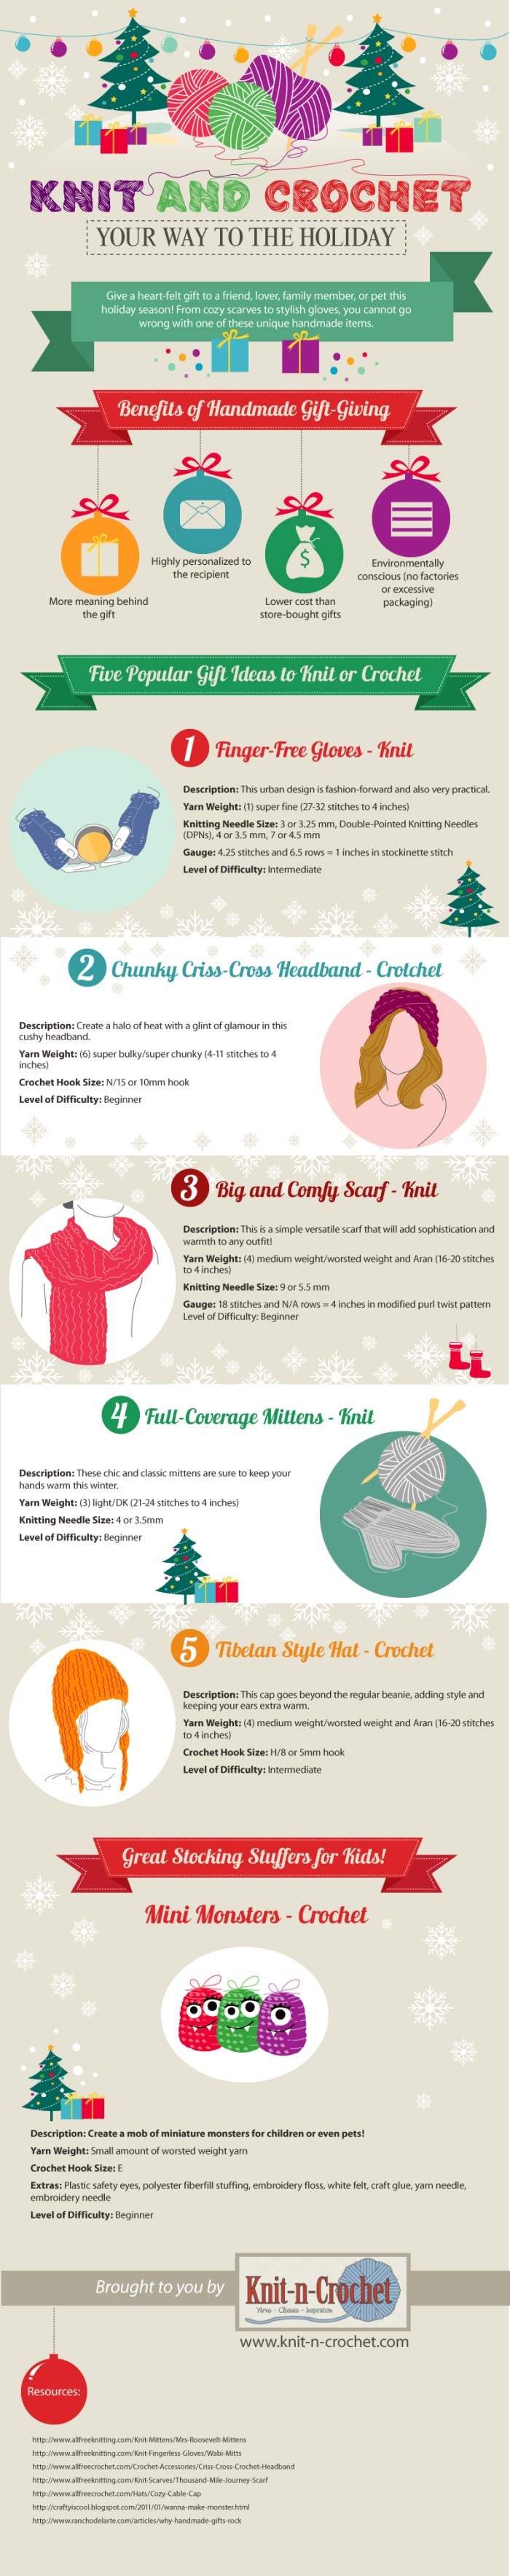 Do-It-Yourself Holiday Gift Ideas